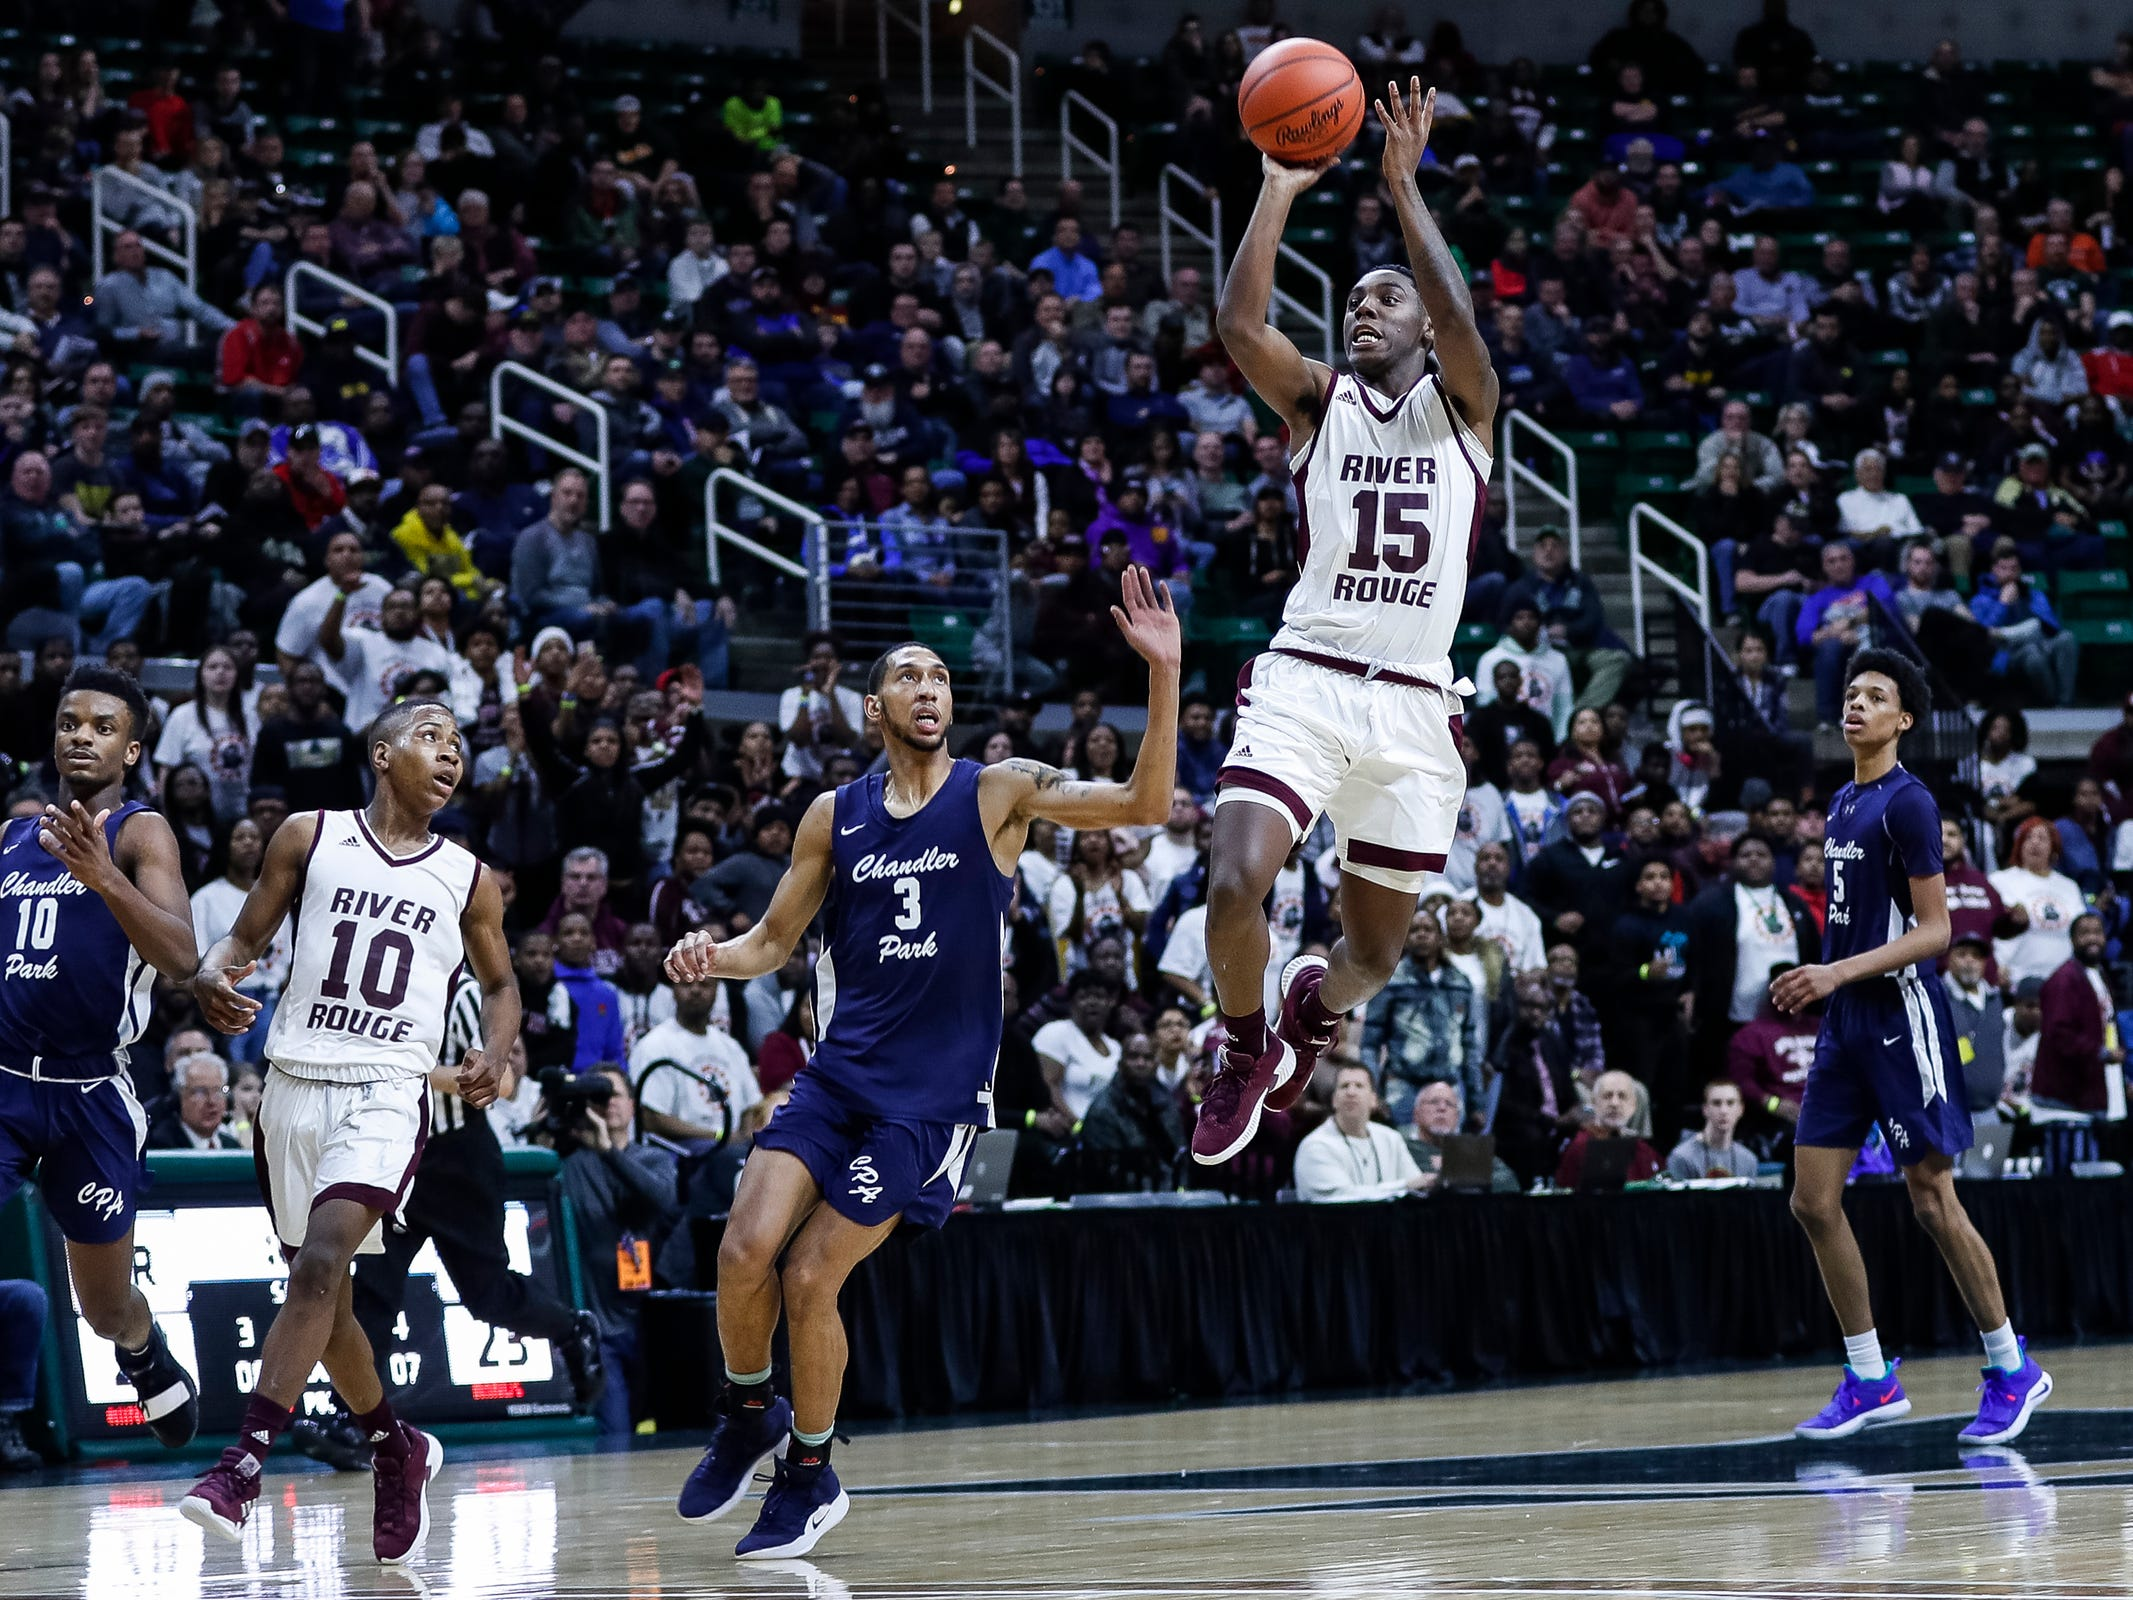 River Rouge's Kamal Hadden (15) makes a jump shot against Harper Woods Chandler Park in the last seconds of the first half of MHSAA Division 2 semifinal at the Breslin Center in East Lansing, Friday, March 15, 2019.